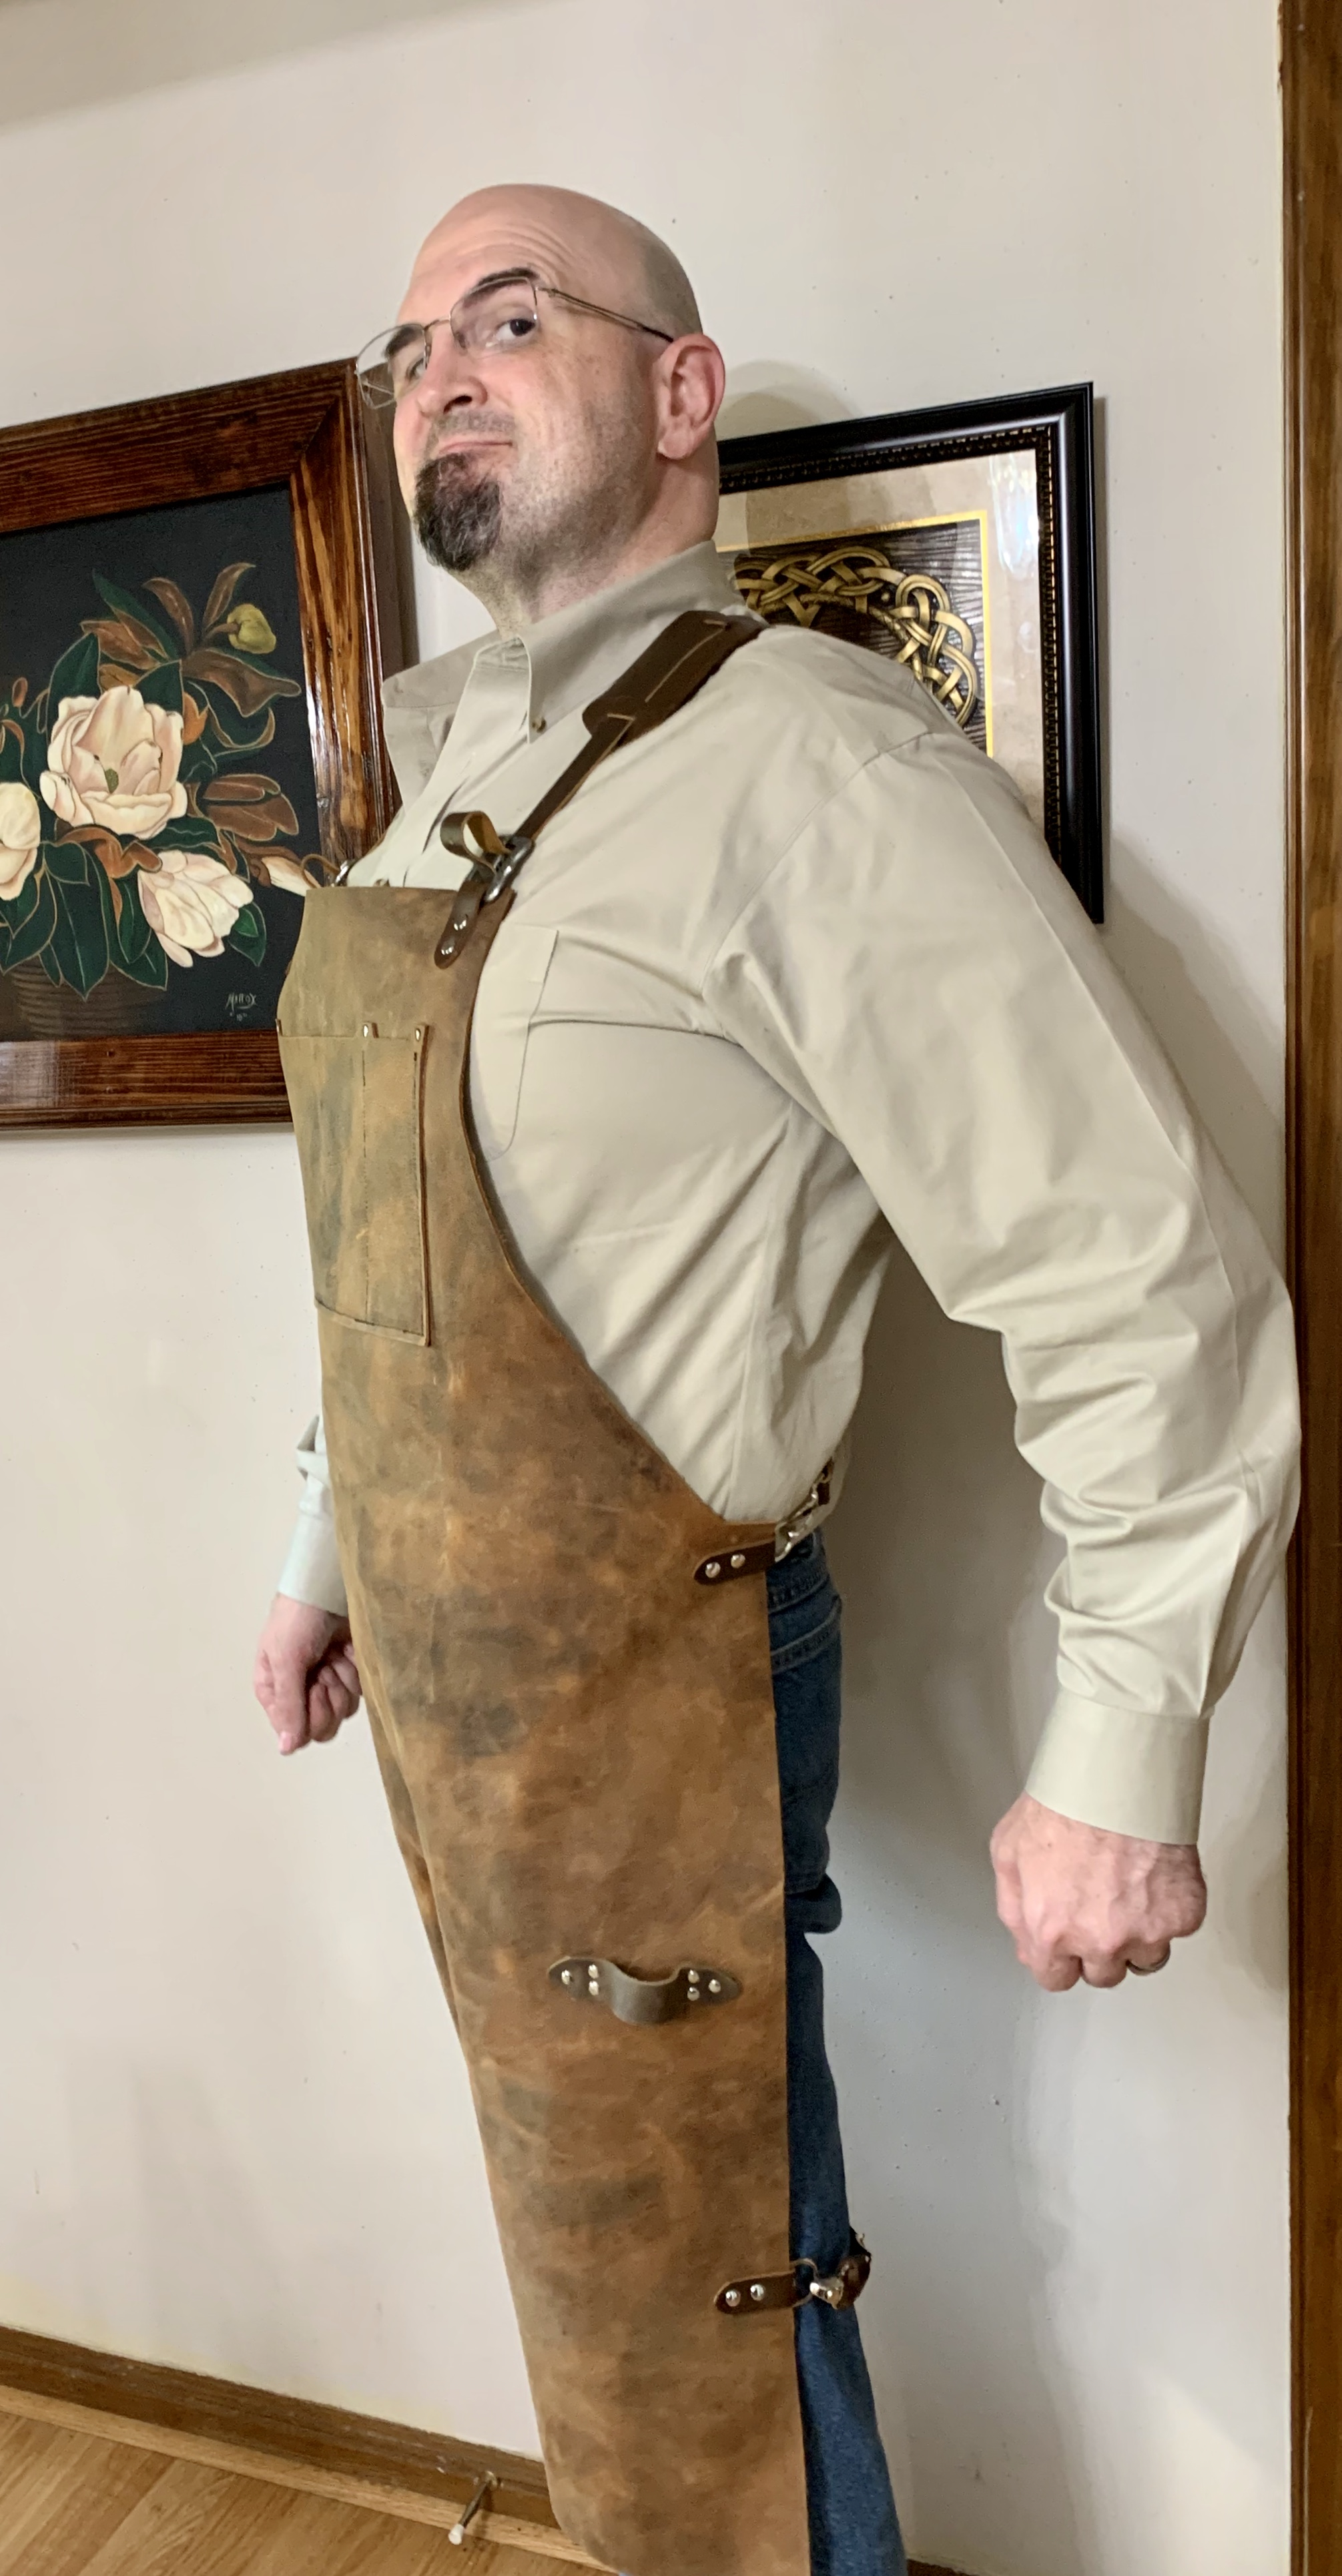 Joseph Patrick gives us a Popeye imitation in his Forge Apron